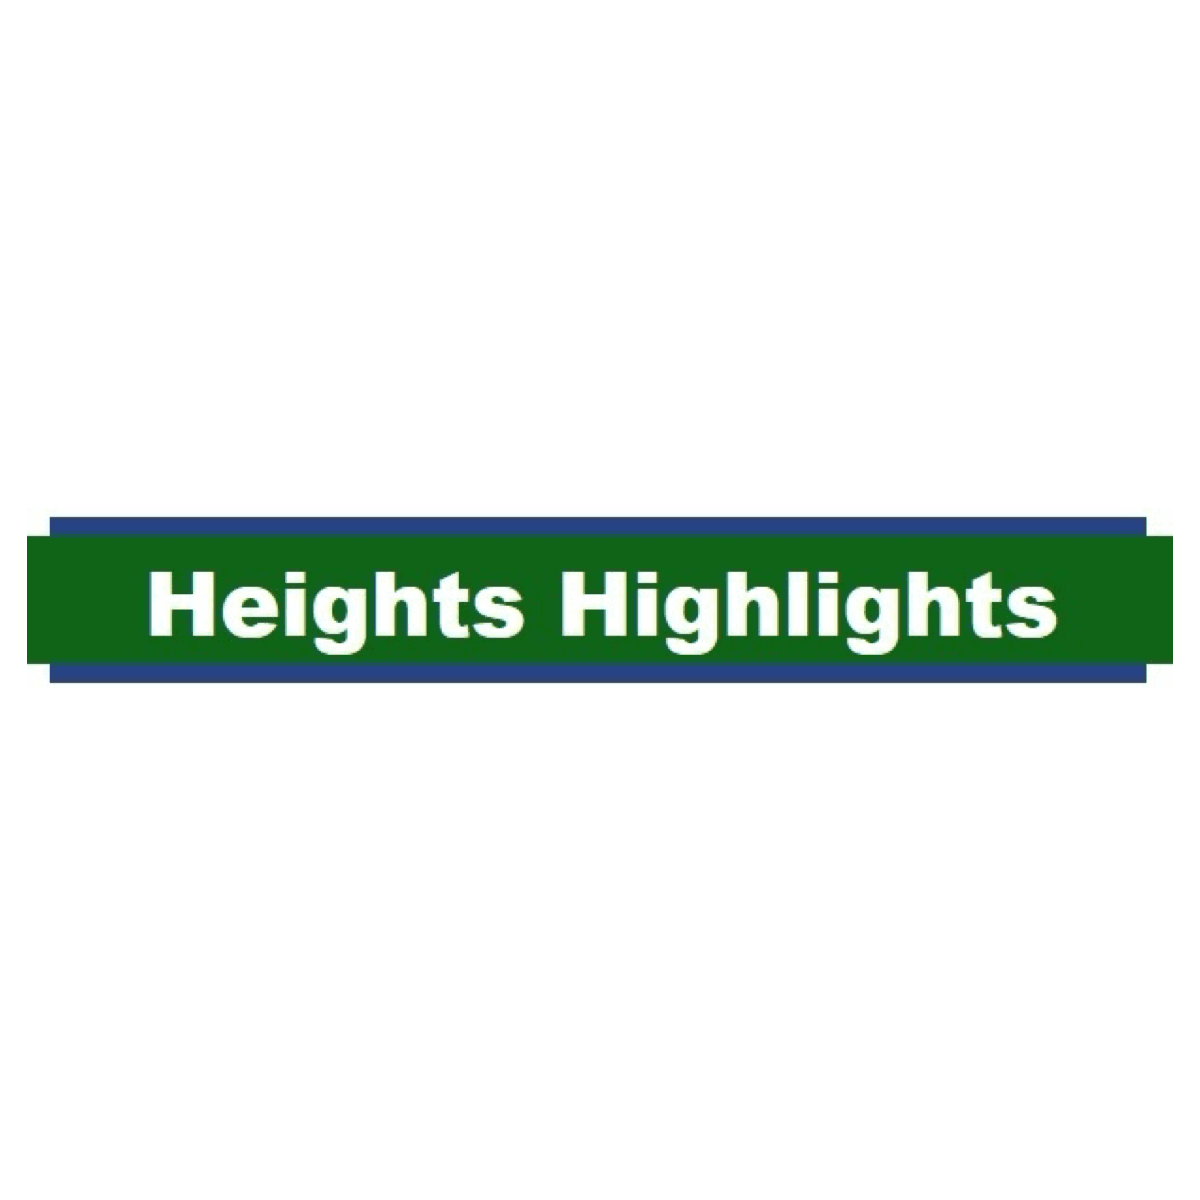 Heights Highlights